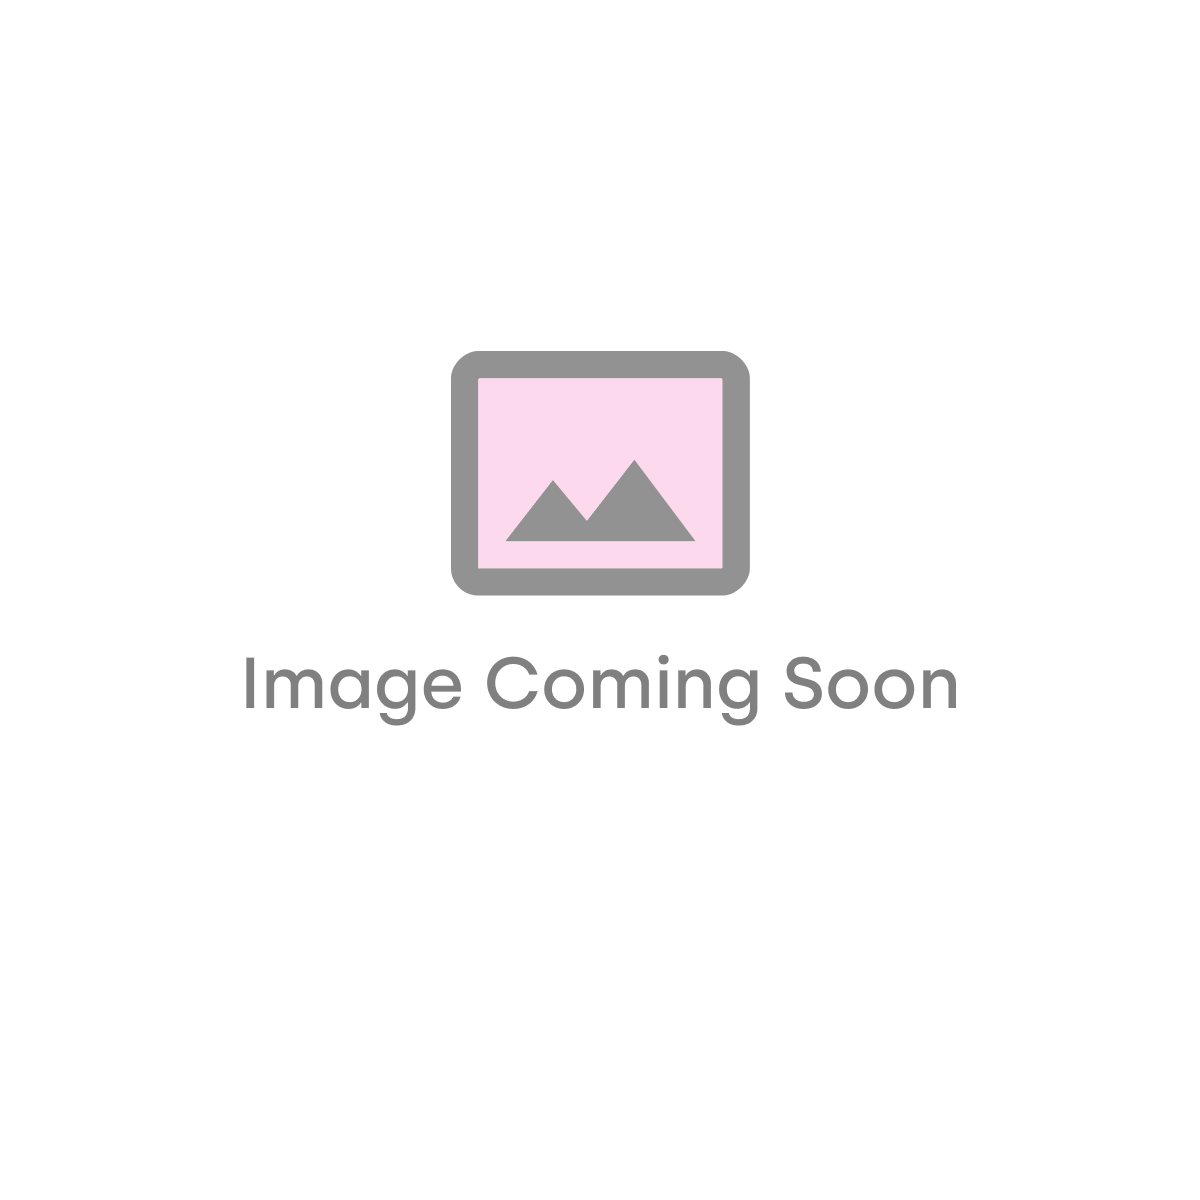 Roma Straight Heated Towel Rail  - 1200mm x 400mm - Anthracite (19717)